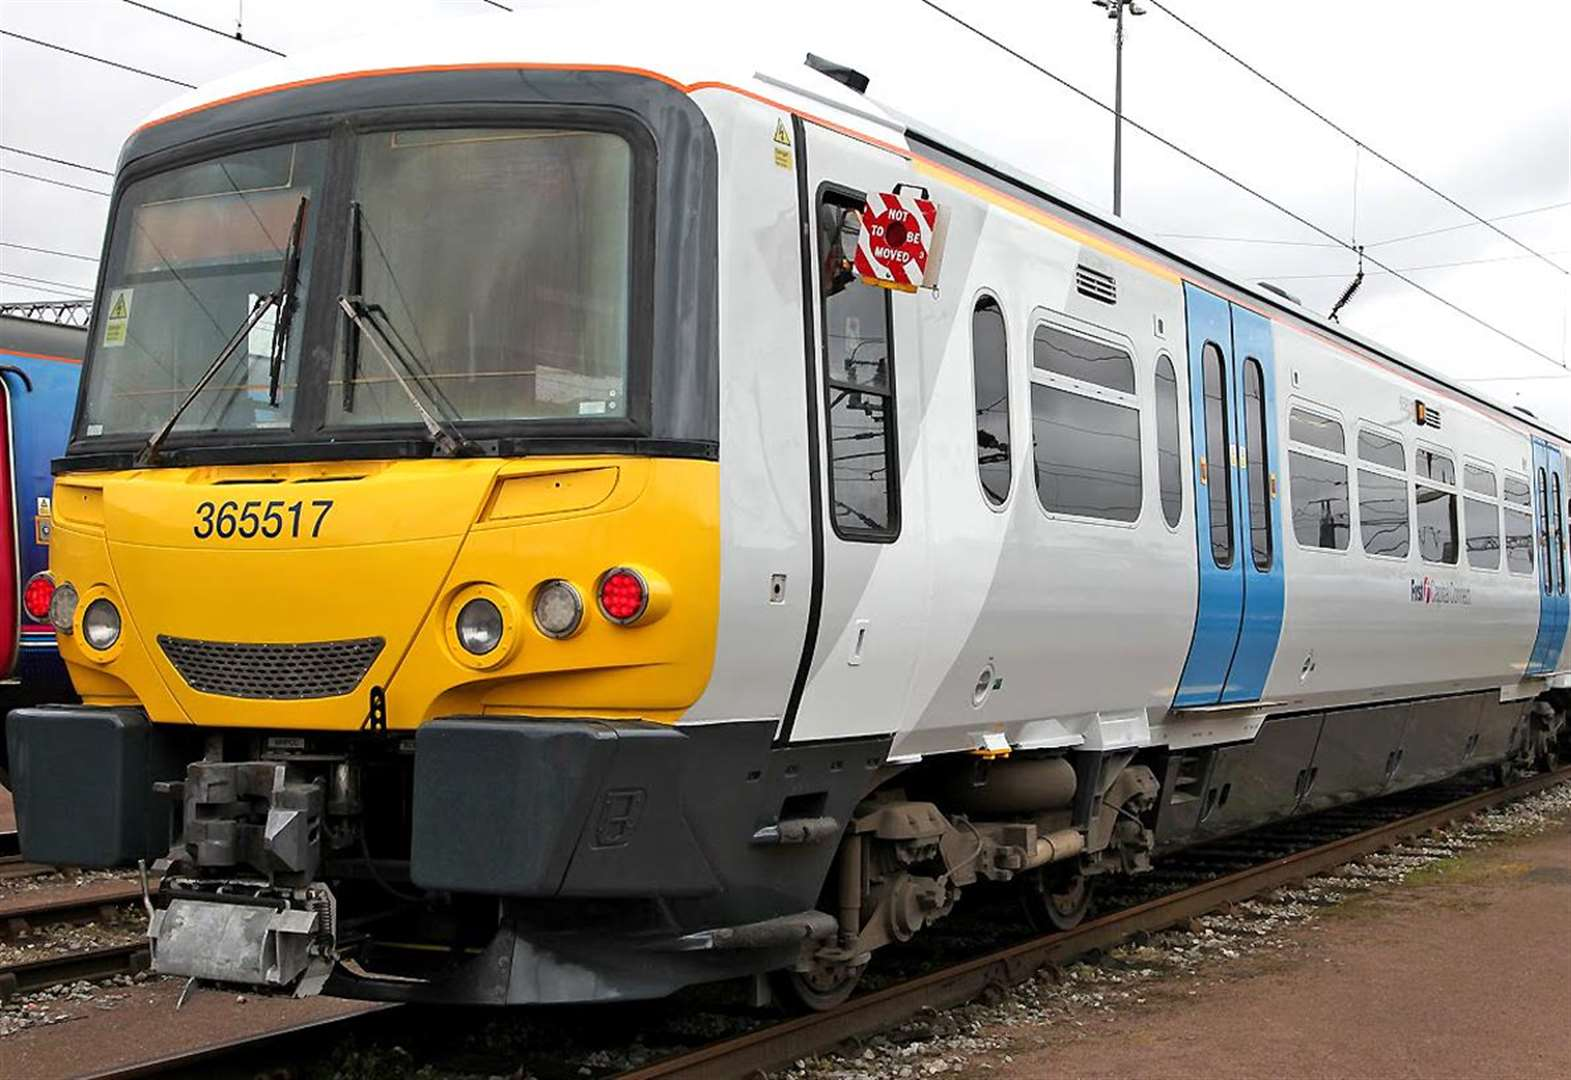 West Norfolk rail operator 'faces franchise axe threat' over timetable chaos